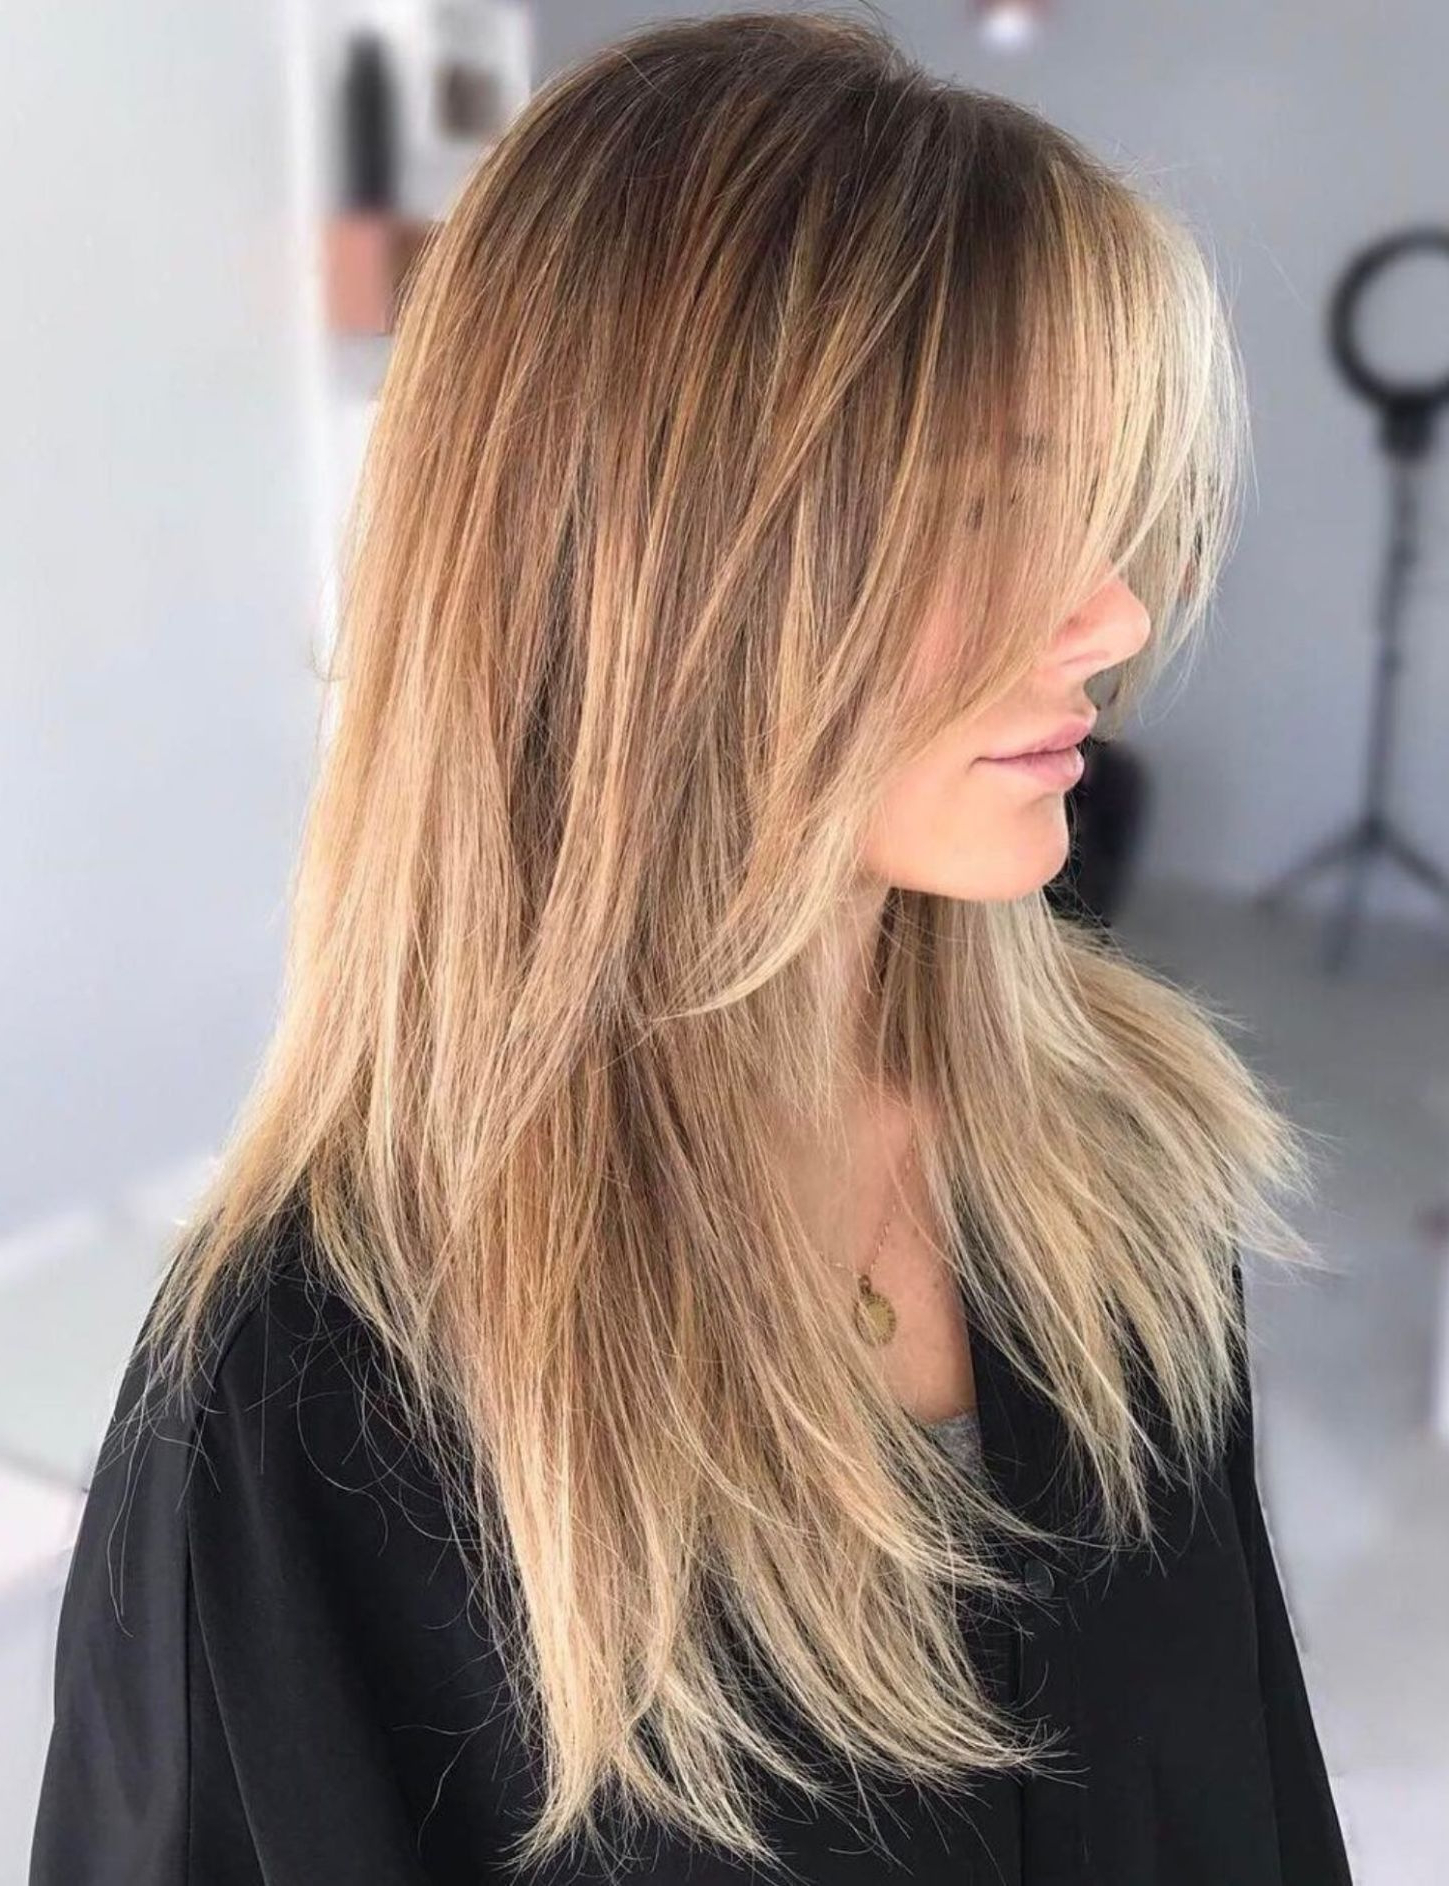 Fashion : Long Straight Hair With Layers And Bangs 40 Inspiration For Best And Newest Straight Layered For Long Hairstyles (View 14 of 20)